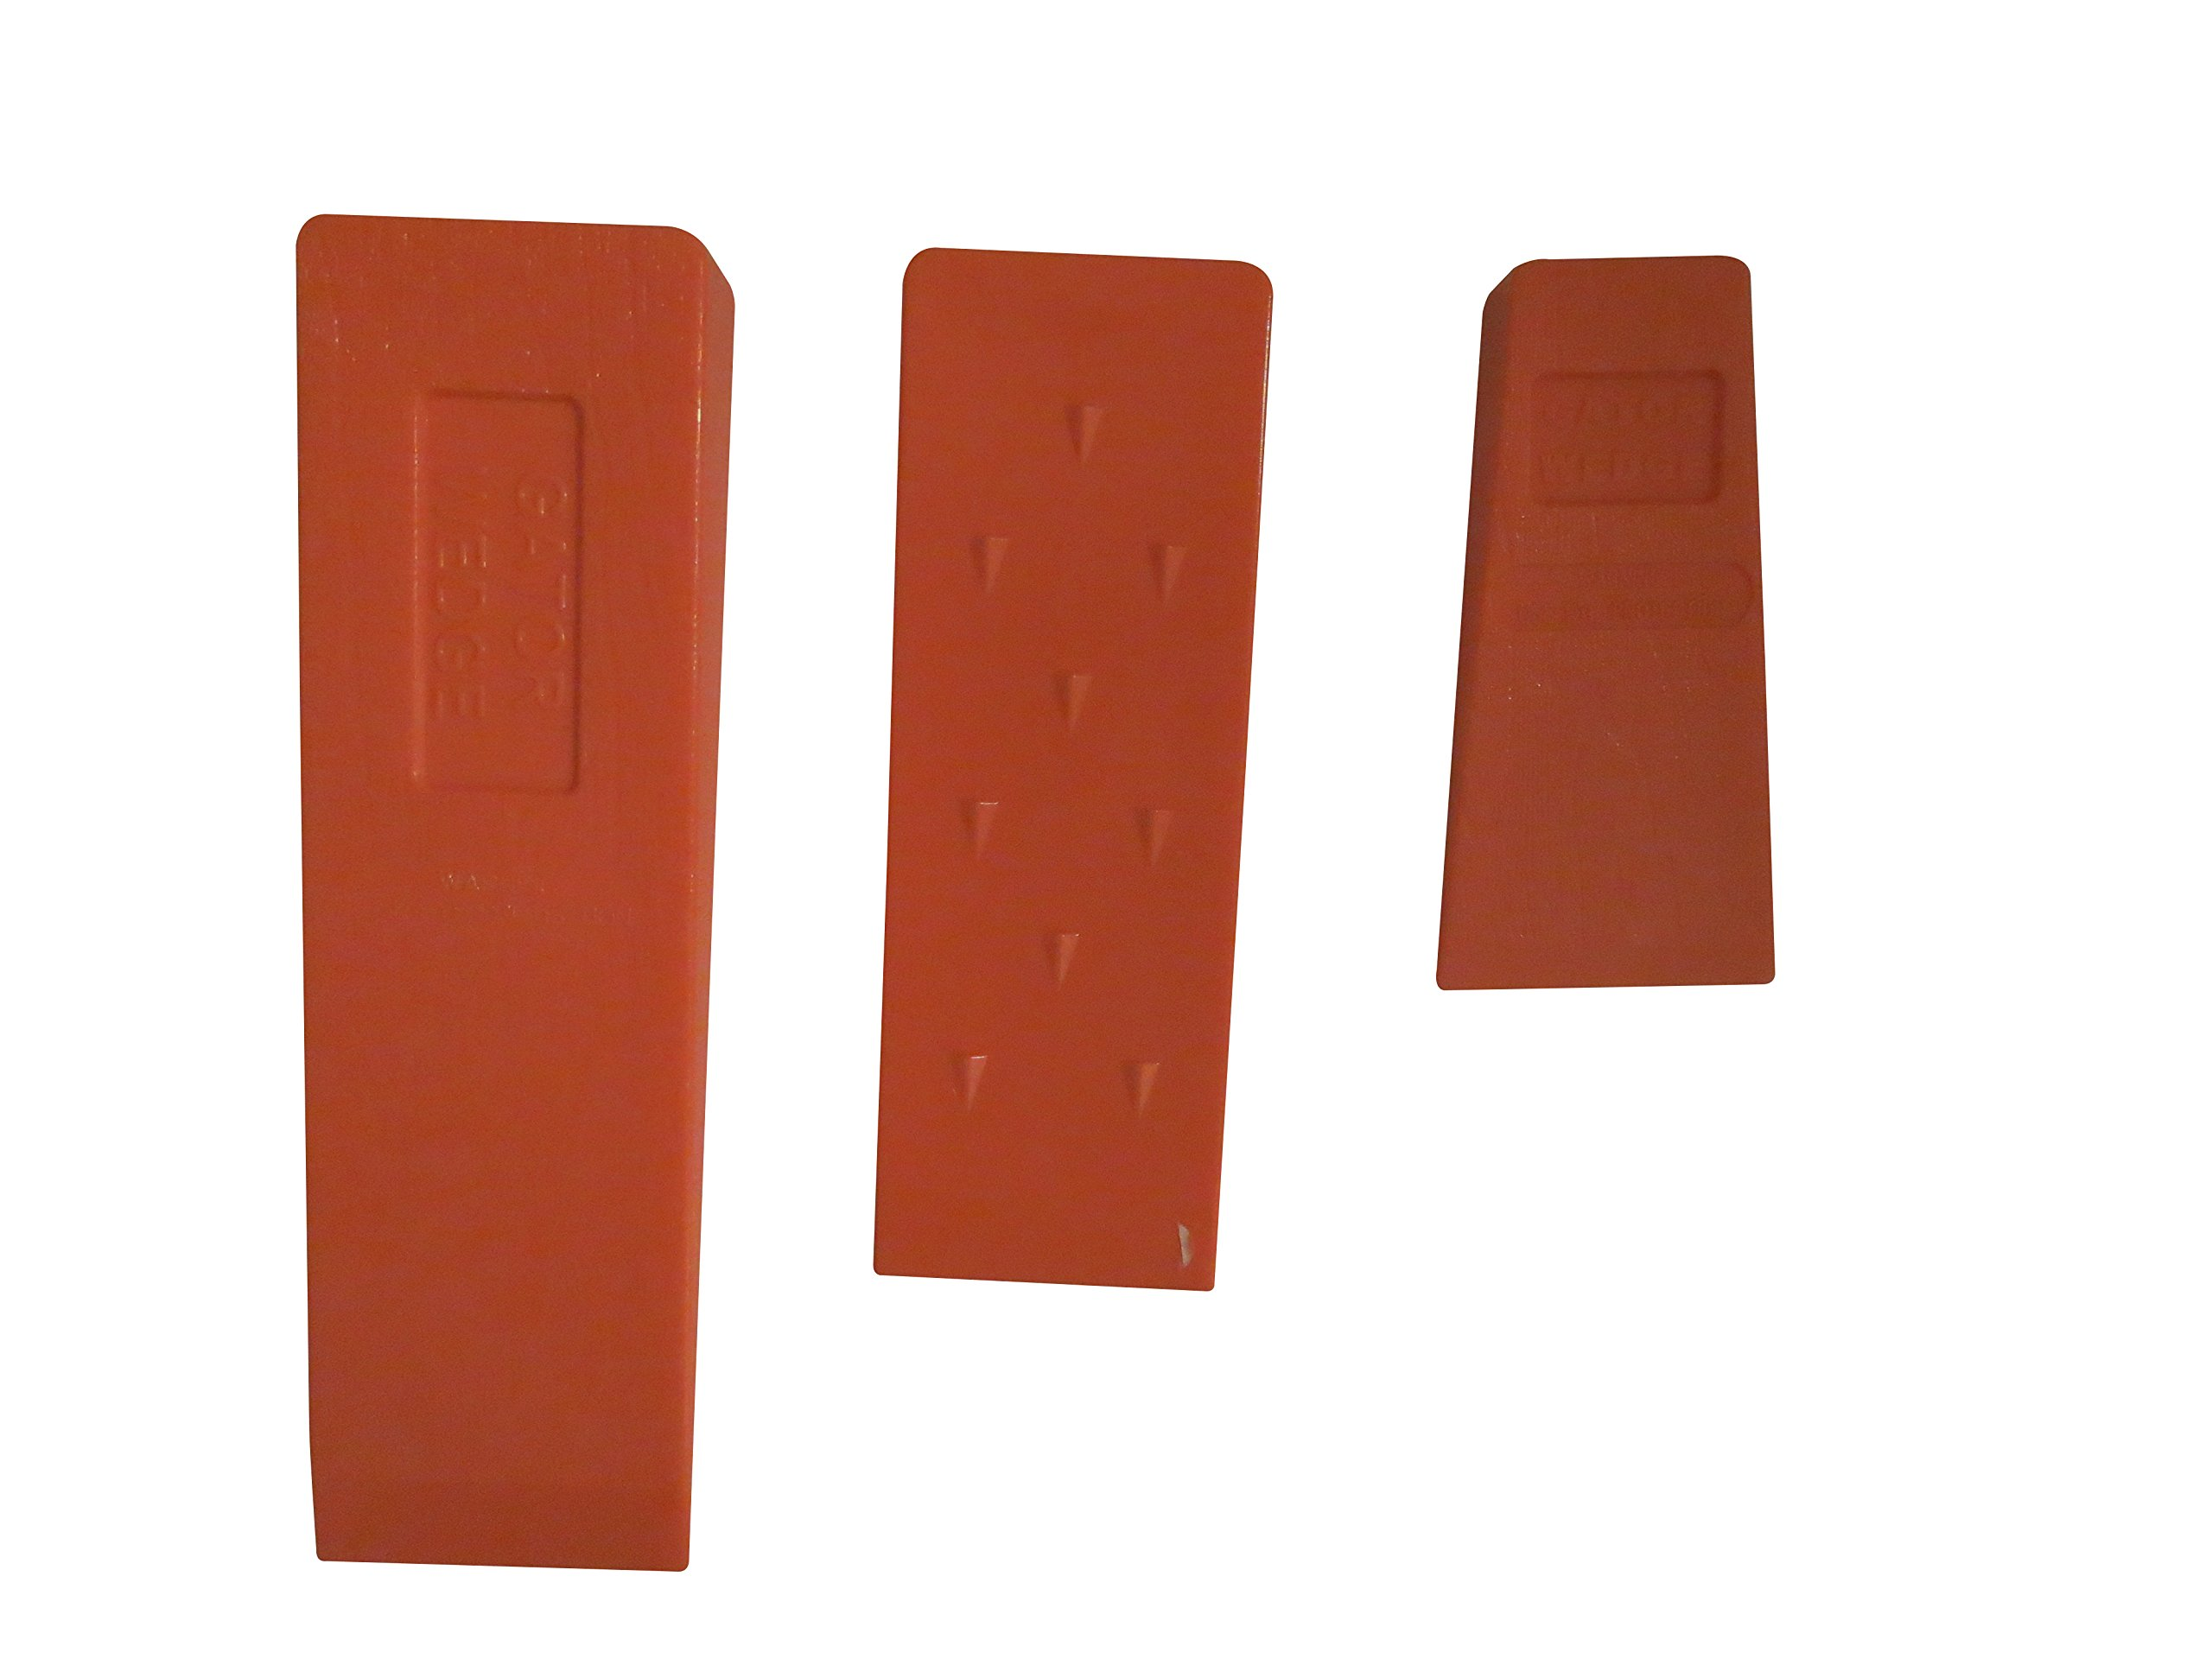 """USA Made Gator Wedge Set Spiked Felling Wedges (Set of 3 Sizes) 5.5"""" 8"""" and 10"""", ABS Plastic, Logging Supplies"""